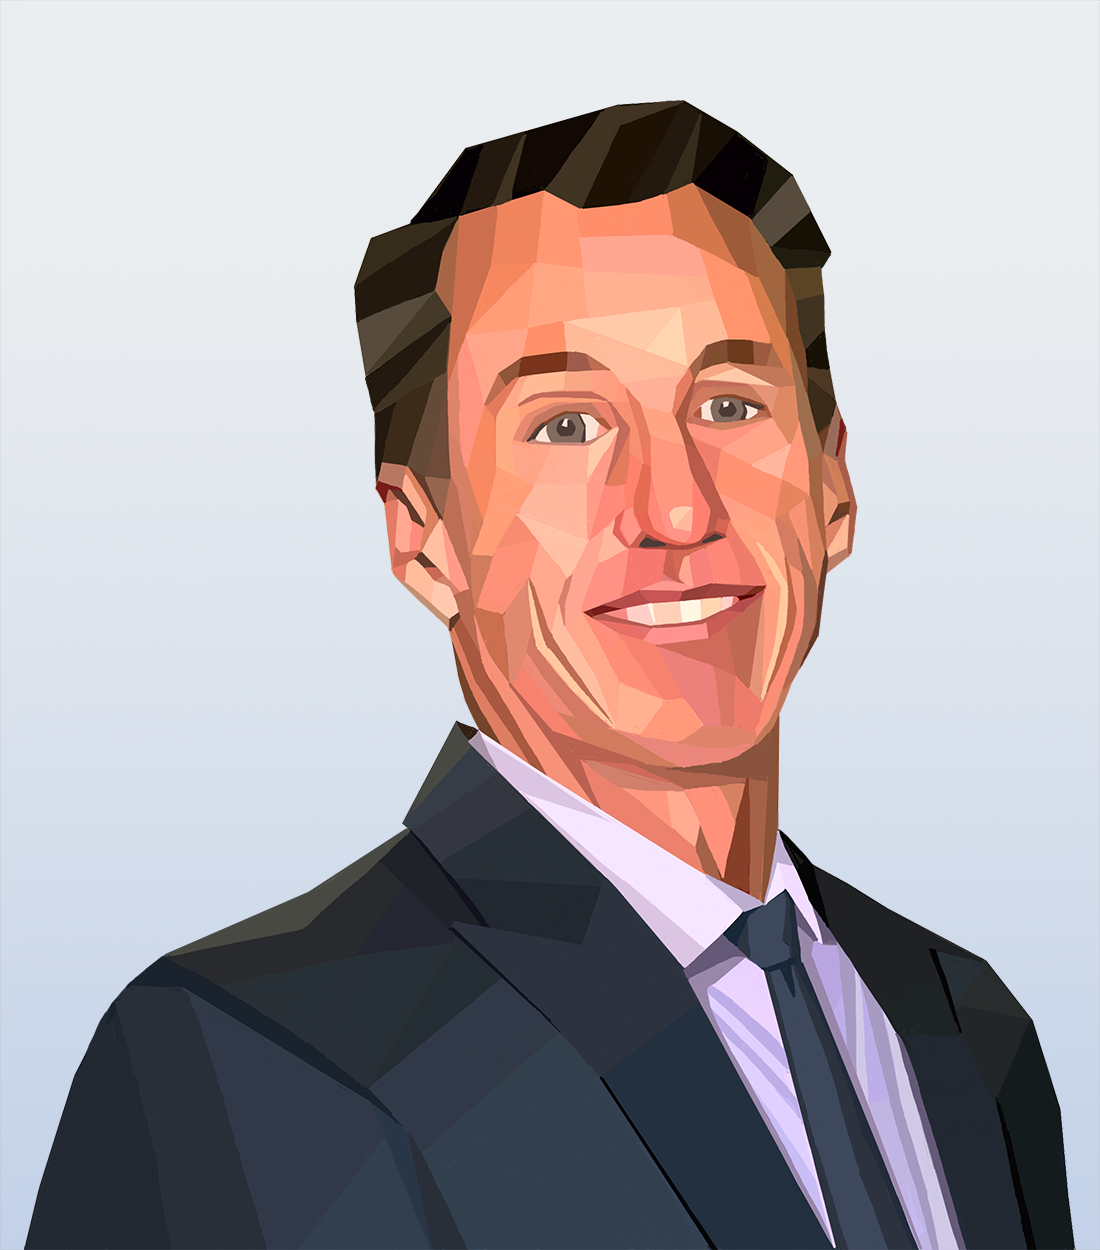 Wall Street Journal Hedcut Inspired Portraits for Team Page on Website